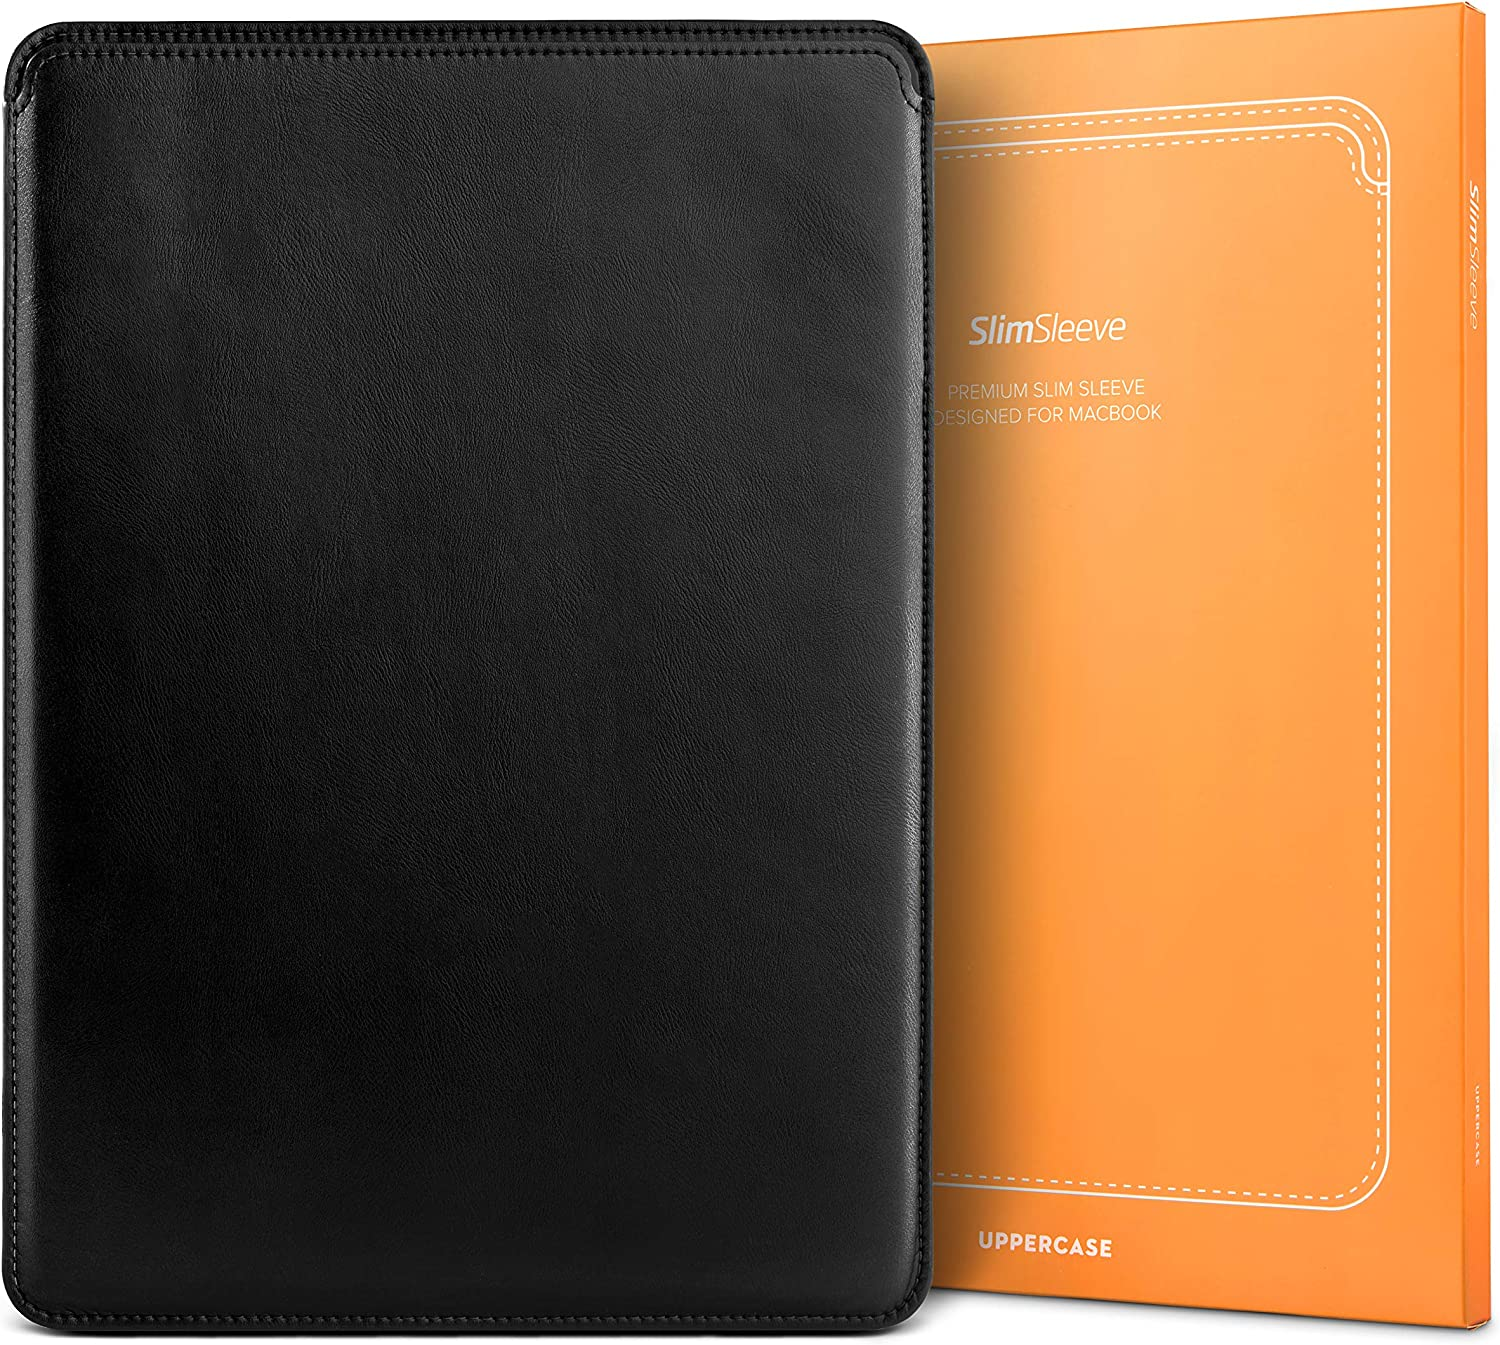 """UPPERCASE SlimSleeve Premium Vegan Leather Sleeve Pouch Case with Form Fitting Design (MacBook Pro 16"""" A2141 (2019+), Black)"""